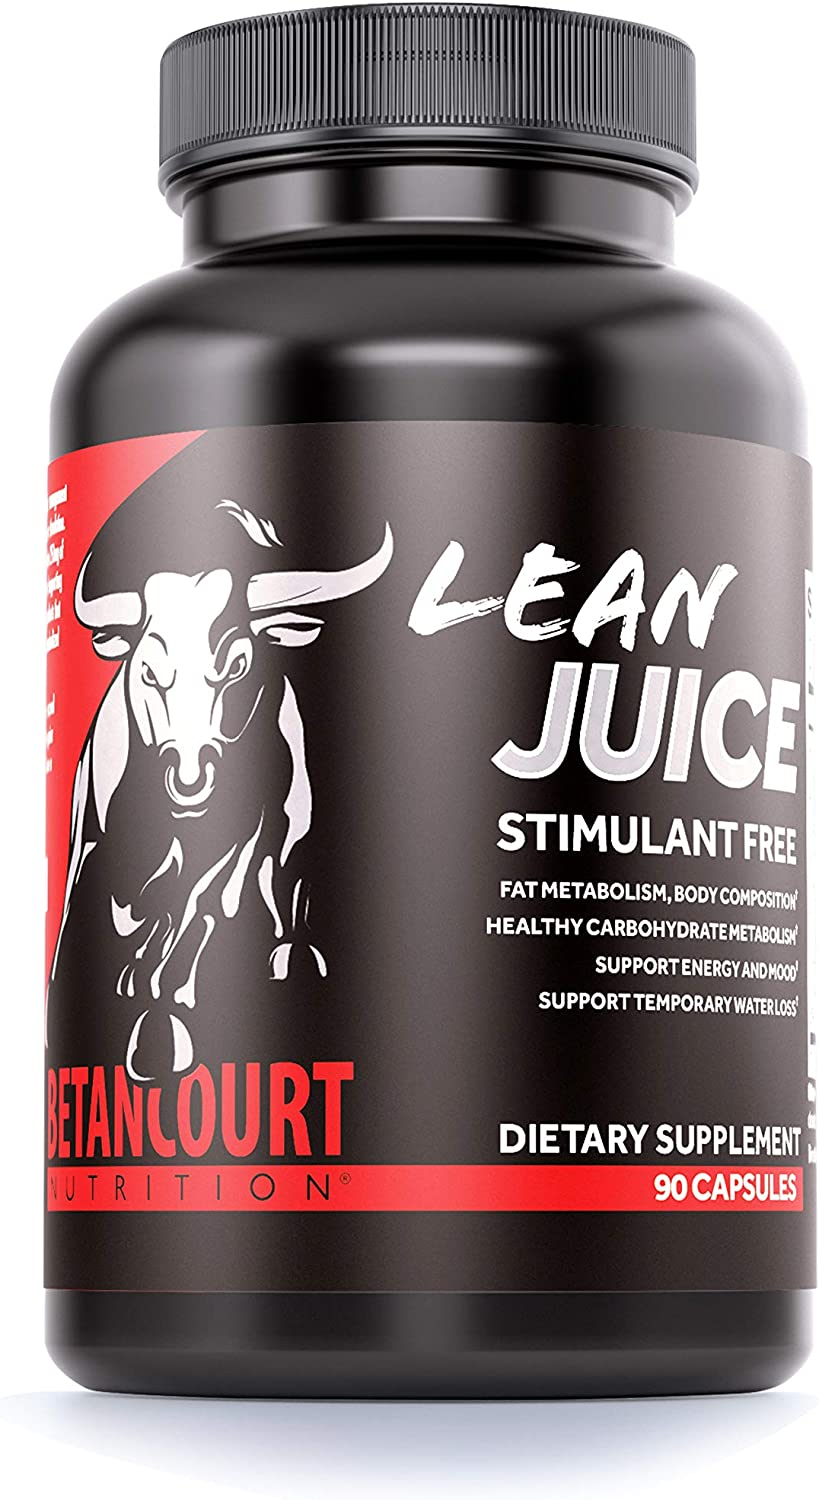 Betancourt Nutrition Lean Juice Dietary Supplement, Stimulant-Free, Body Re-Composition Aid, Capsules, 90-Count